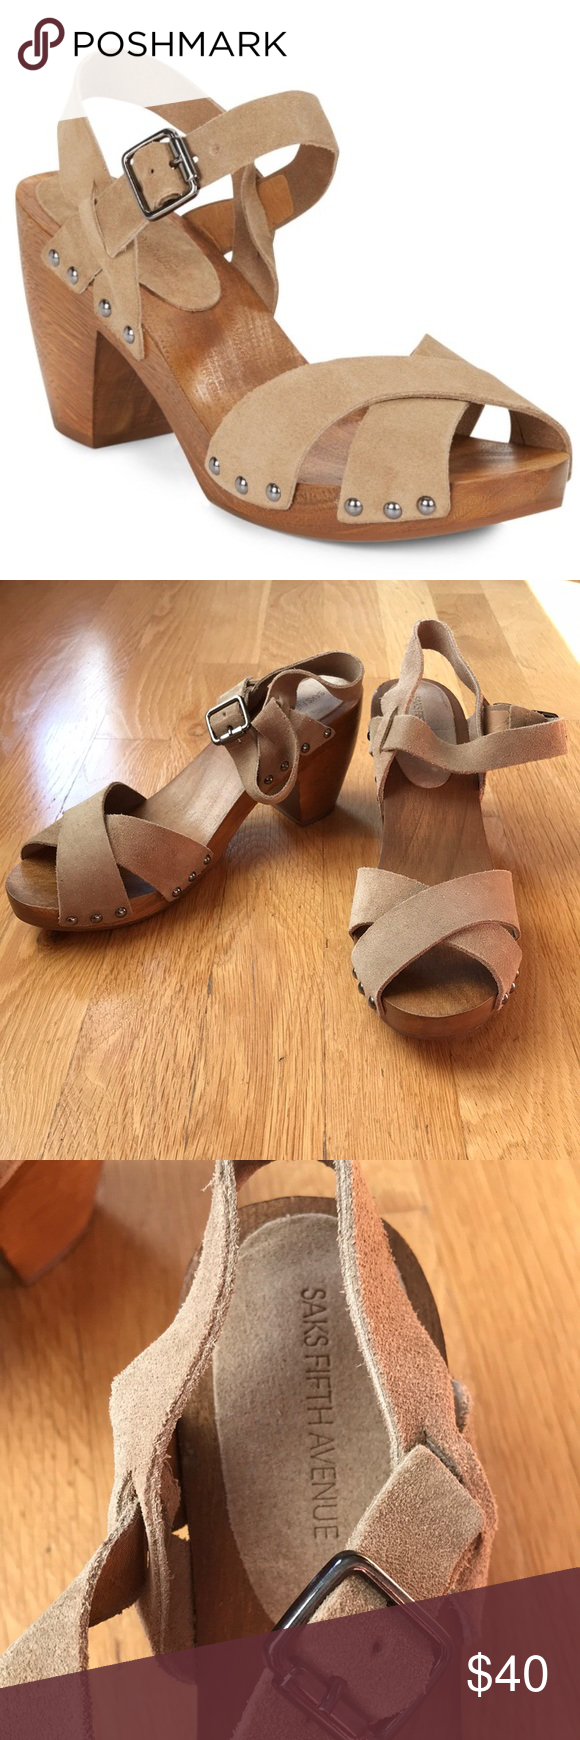 988aa946901b5 Saks Fifth Avenue Boston Suede   Wood Clog Sandals Saks Fifth Avenue Boston  suede   wood clog sandals in excellent condition. Only worn once.